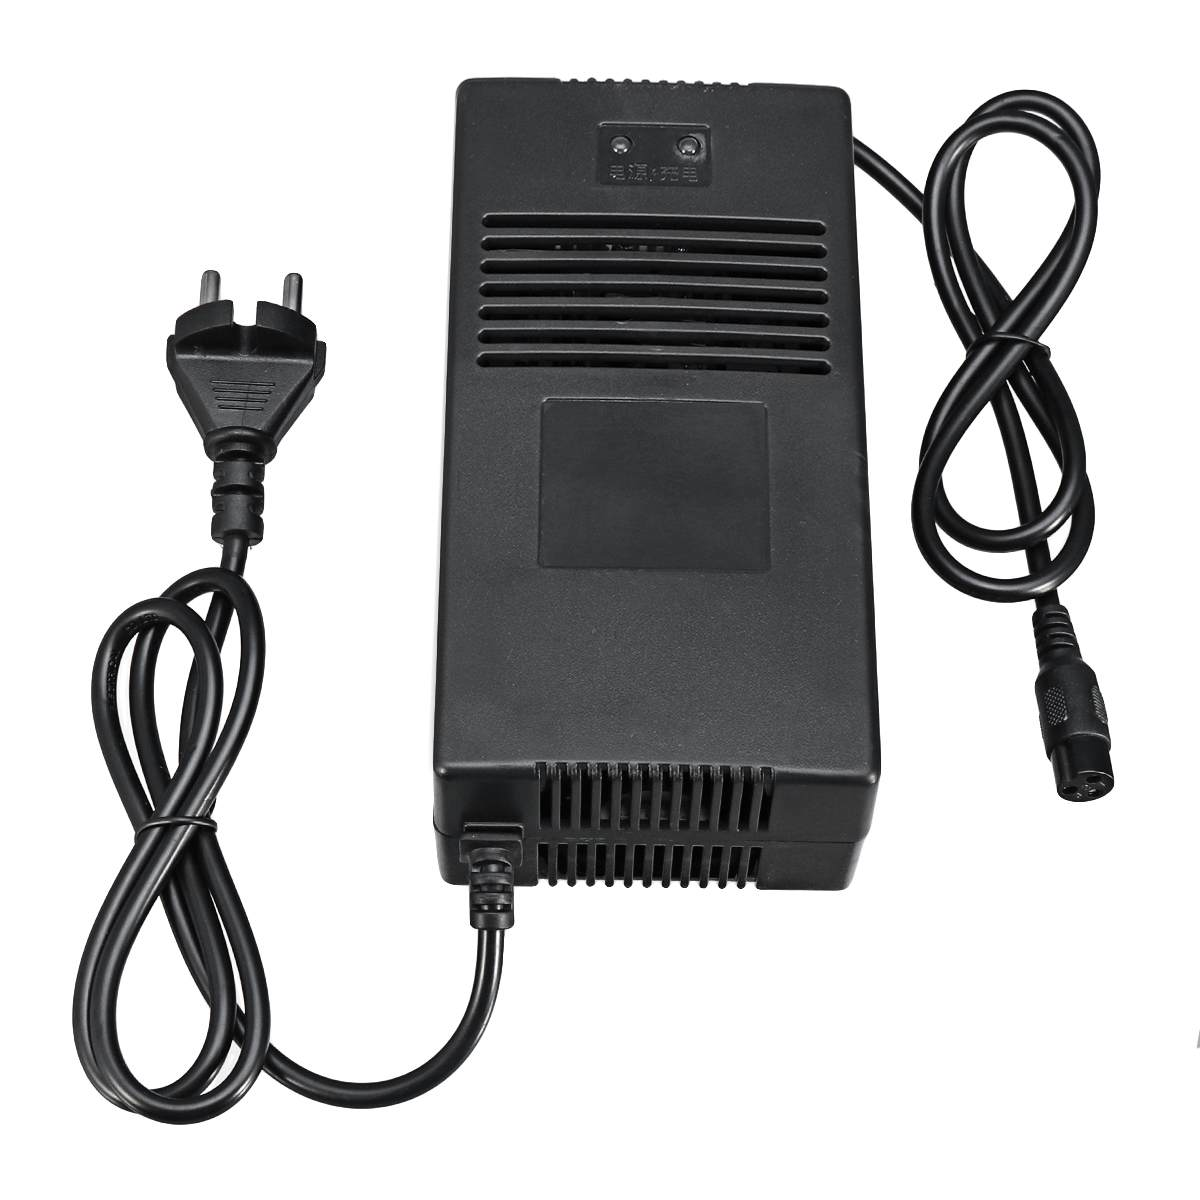 48V Lithium Li-ion Battery Charger 54.6V 4A For Electric Bike Bicycle Scooter Quick Charge Function